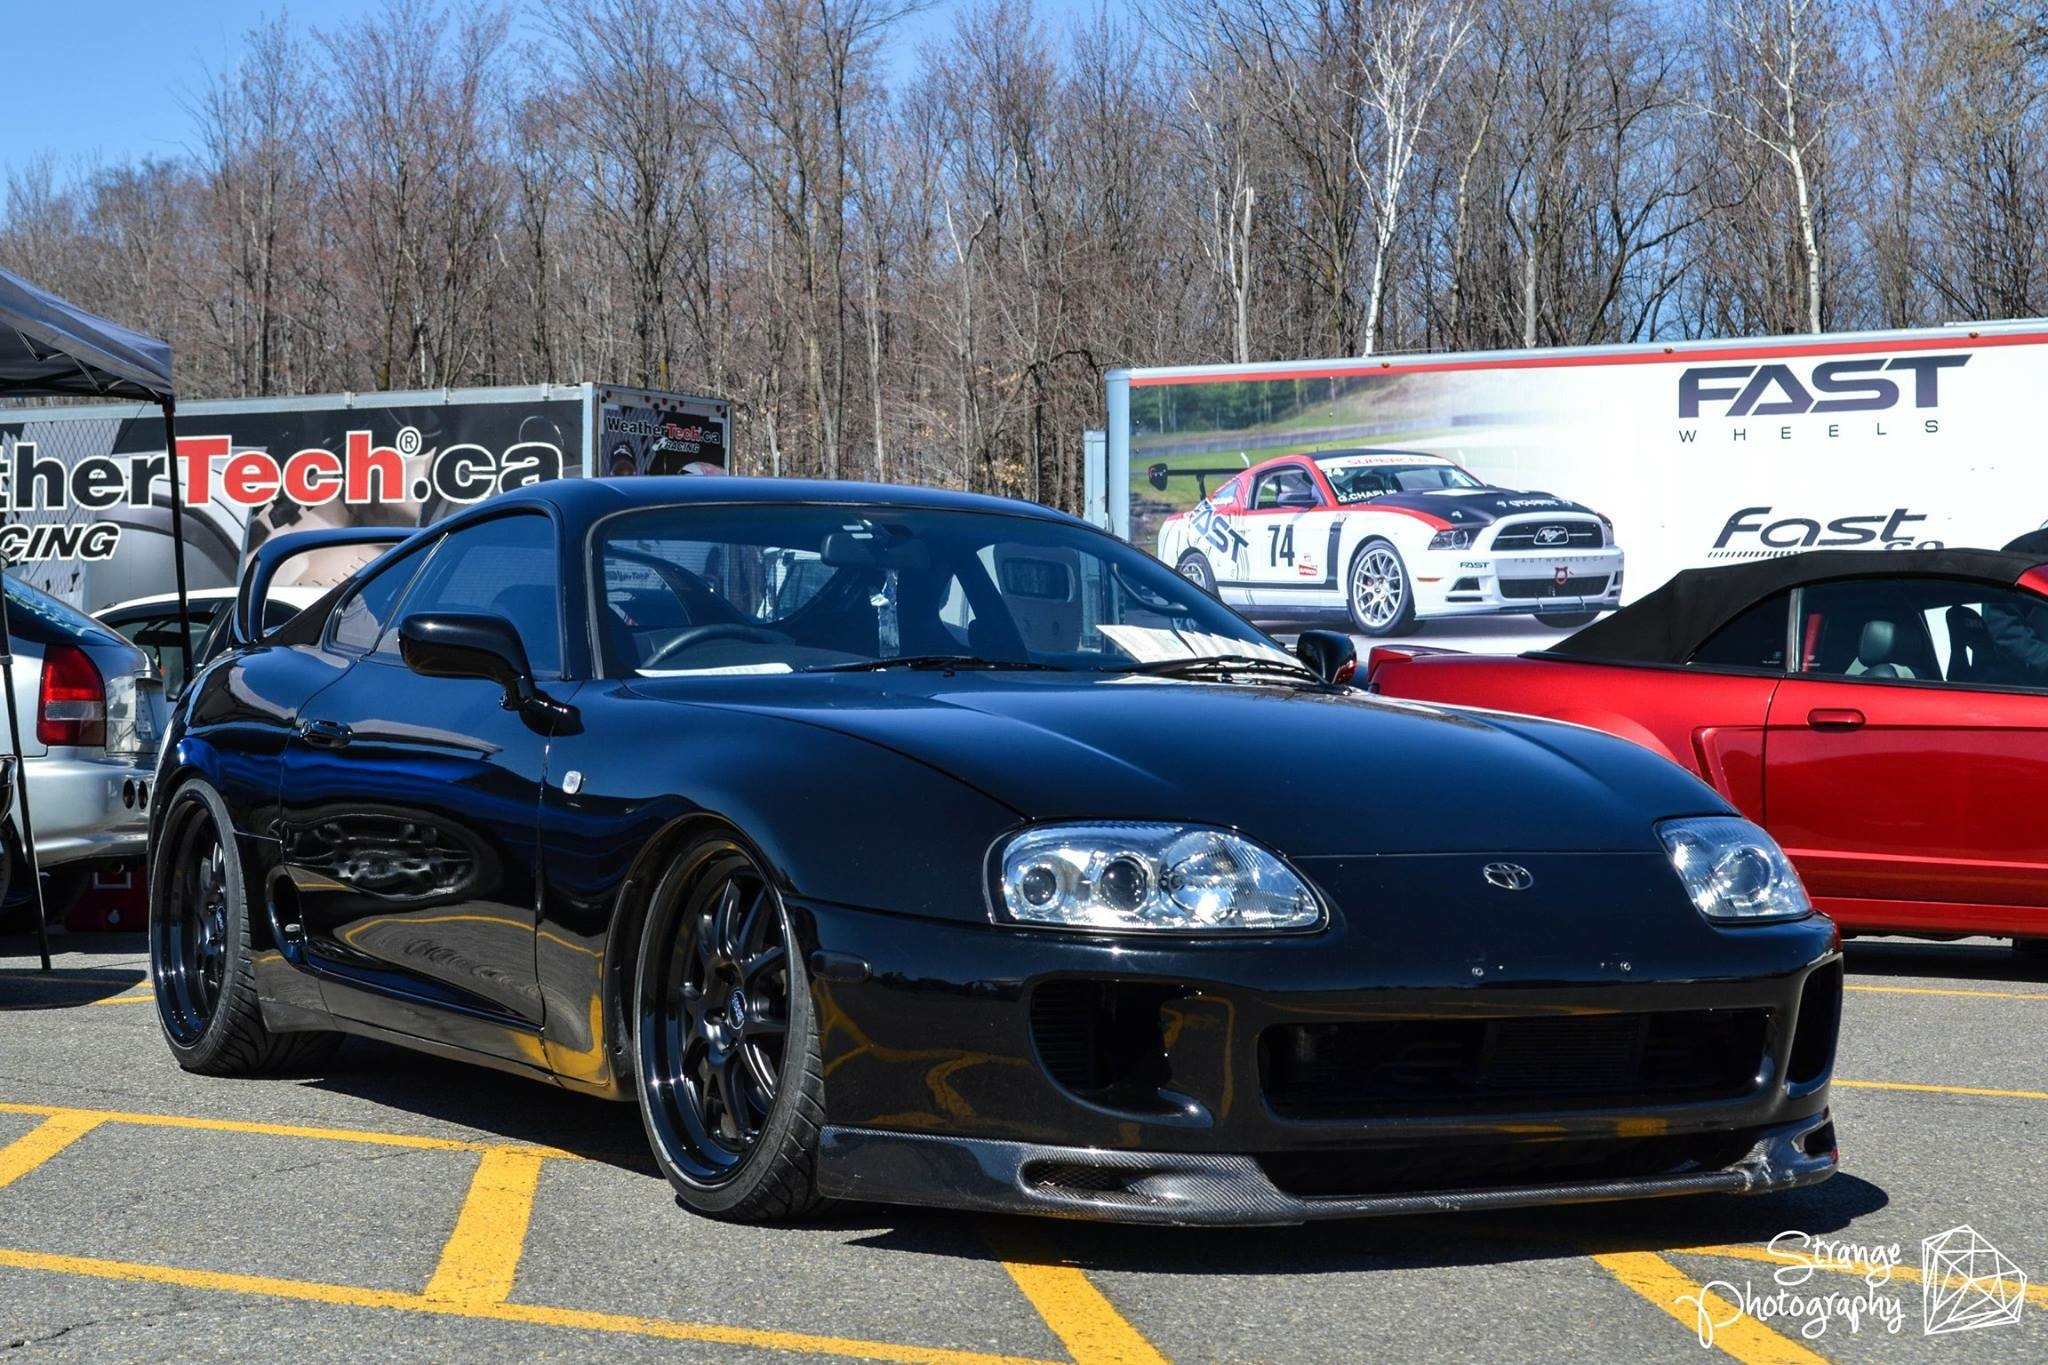 Modified black toyota supra for car enthusiasts appreciation carid carbon fiber front lip on black toyota supra photo by concept one voltagebd Choice Image